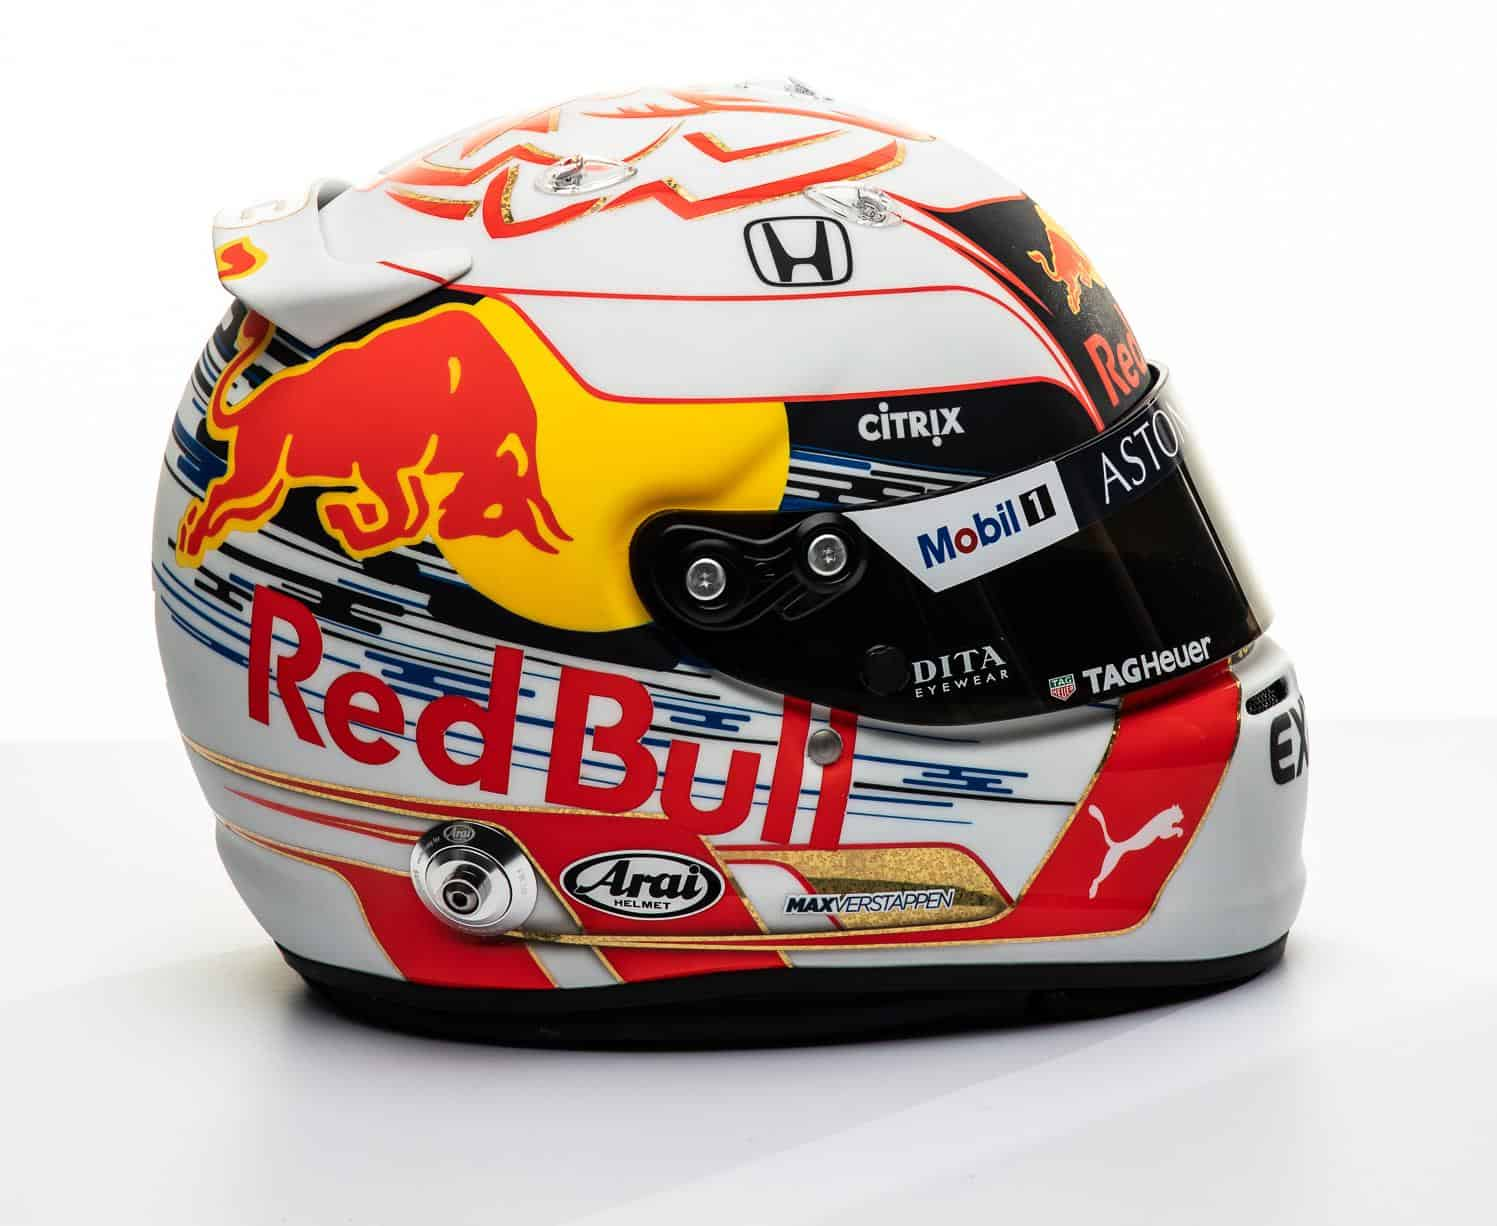 2019 F1 Max Verstappen Red Bull Honda helmet right side Photo Red Bull Edited by MAXF1net